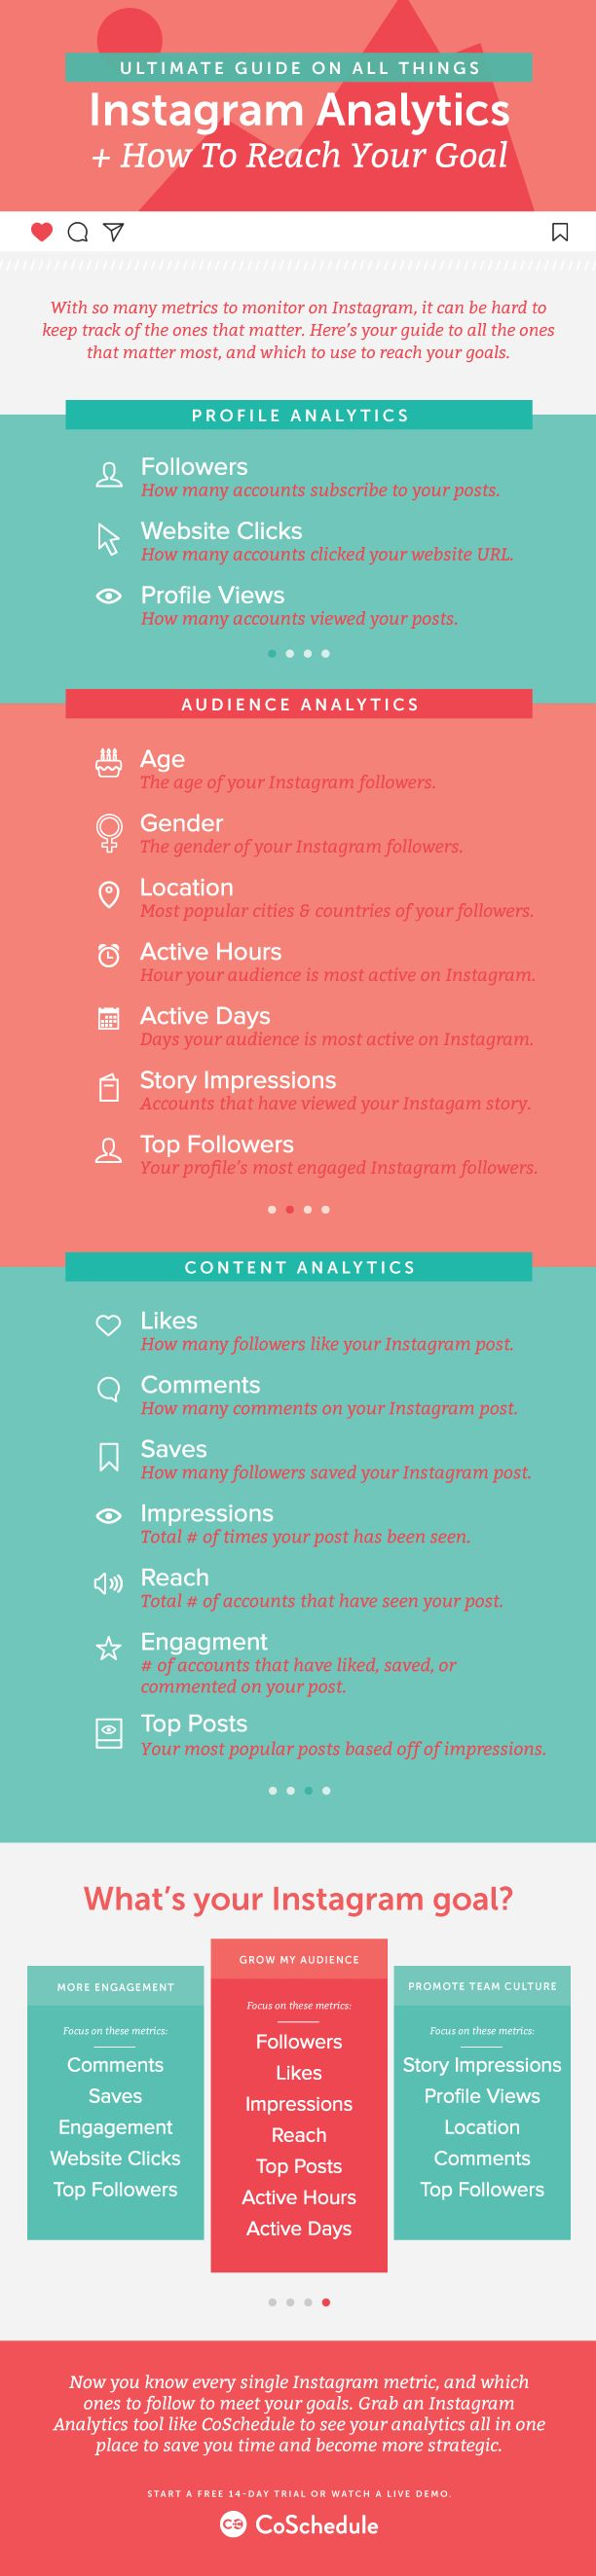 Everything You Need To Know About Instagram Analytics - #infographic